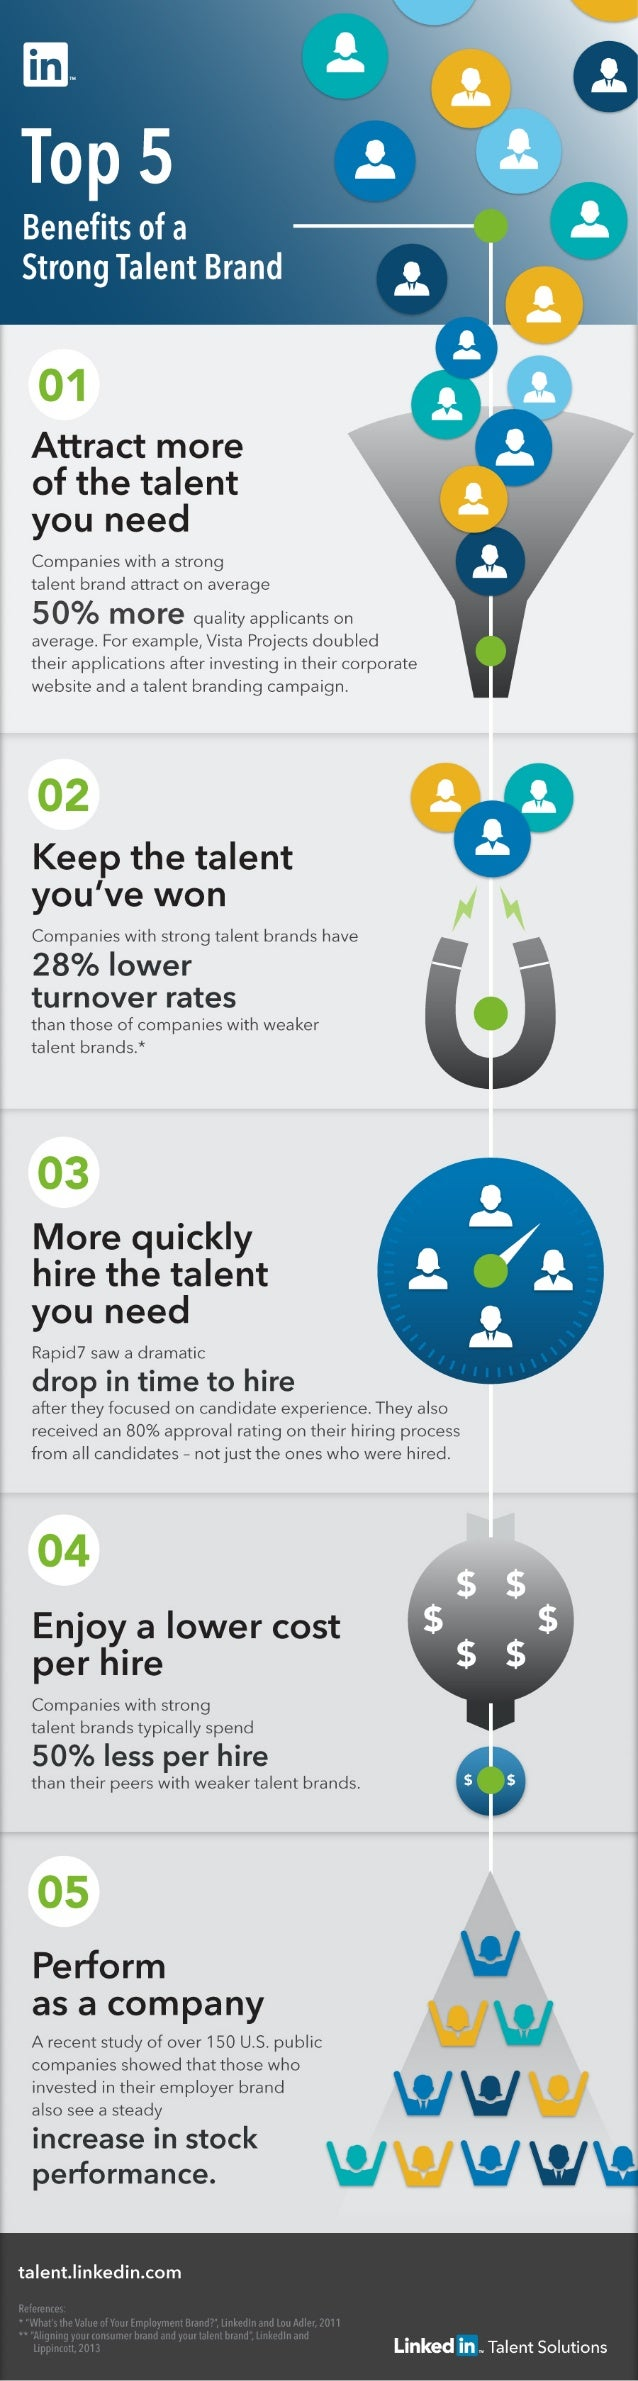 Top 5 Benefits of a Strong Talent Brand | Infographic